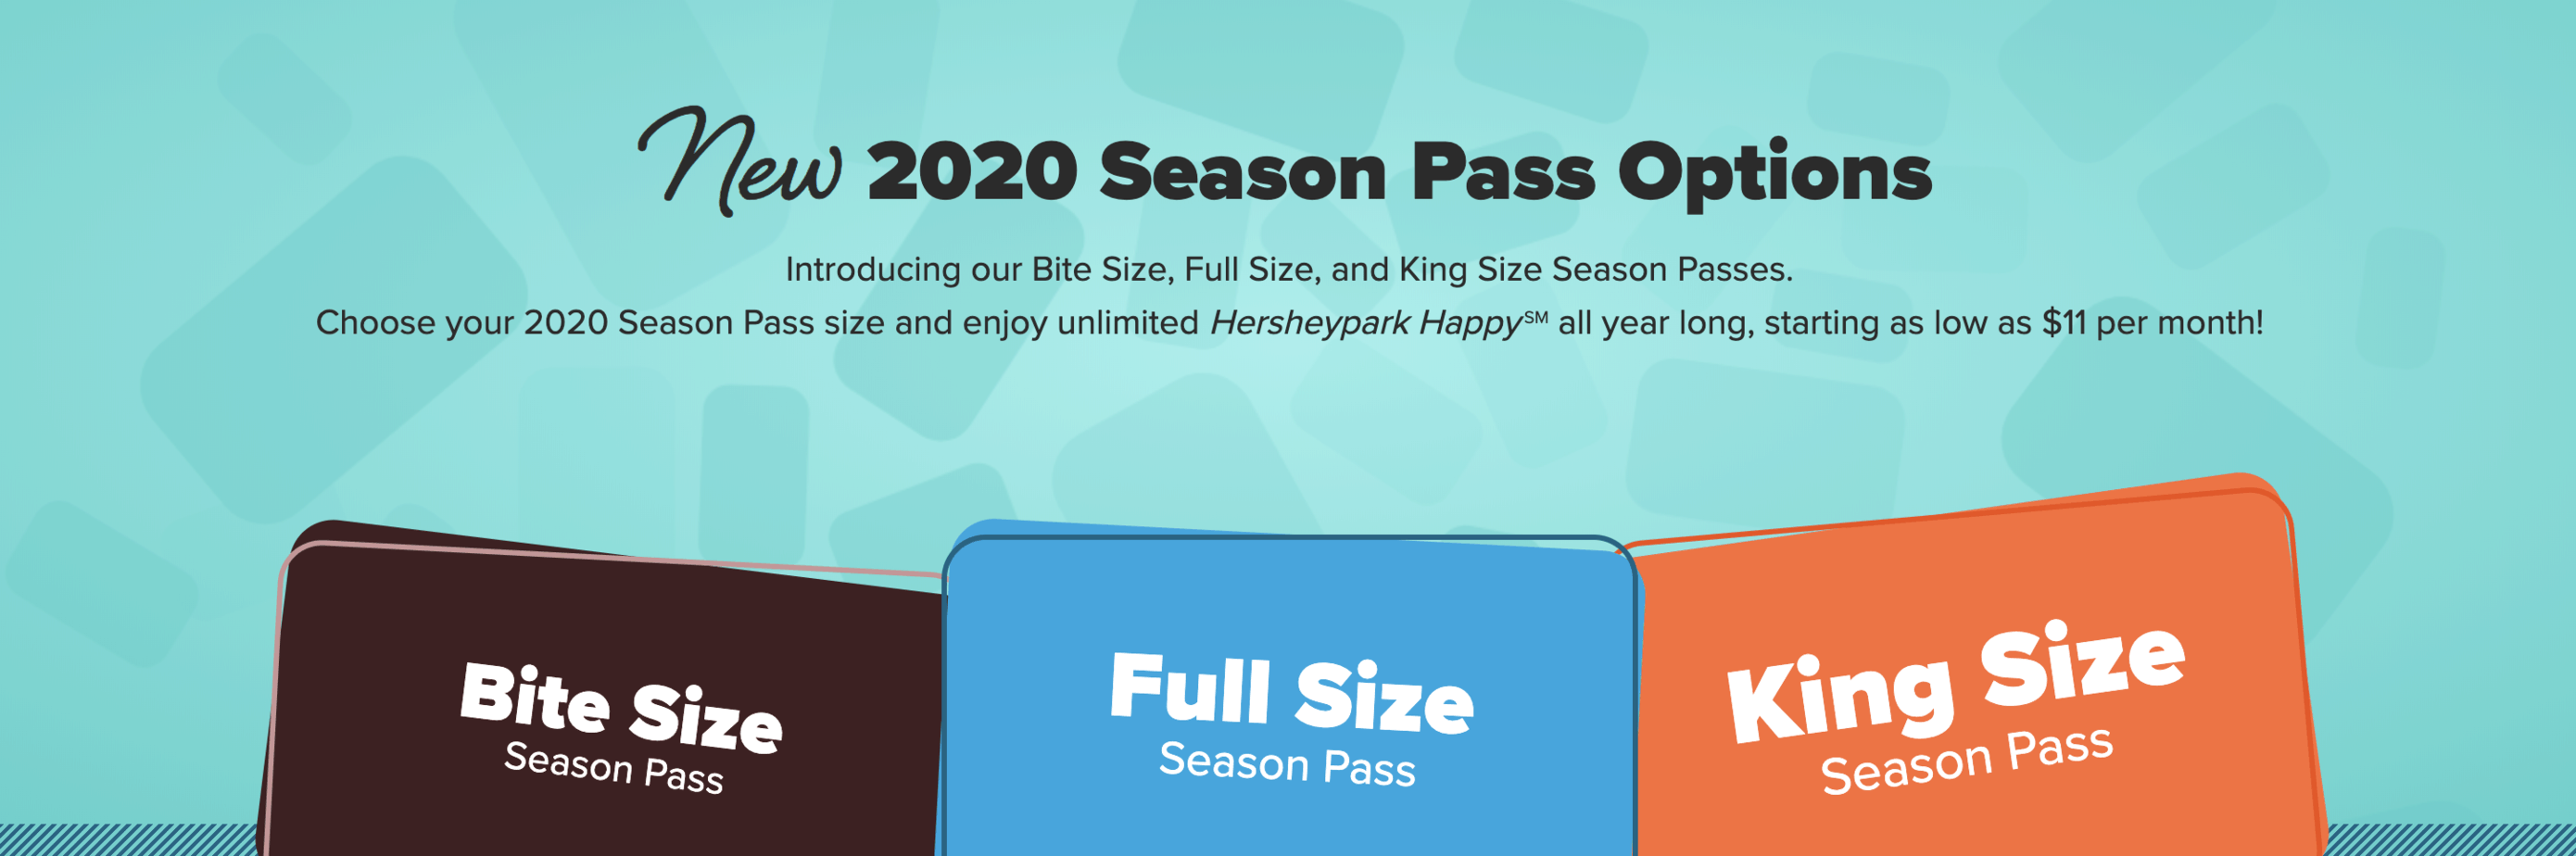 hersheypark season pass